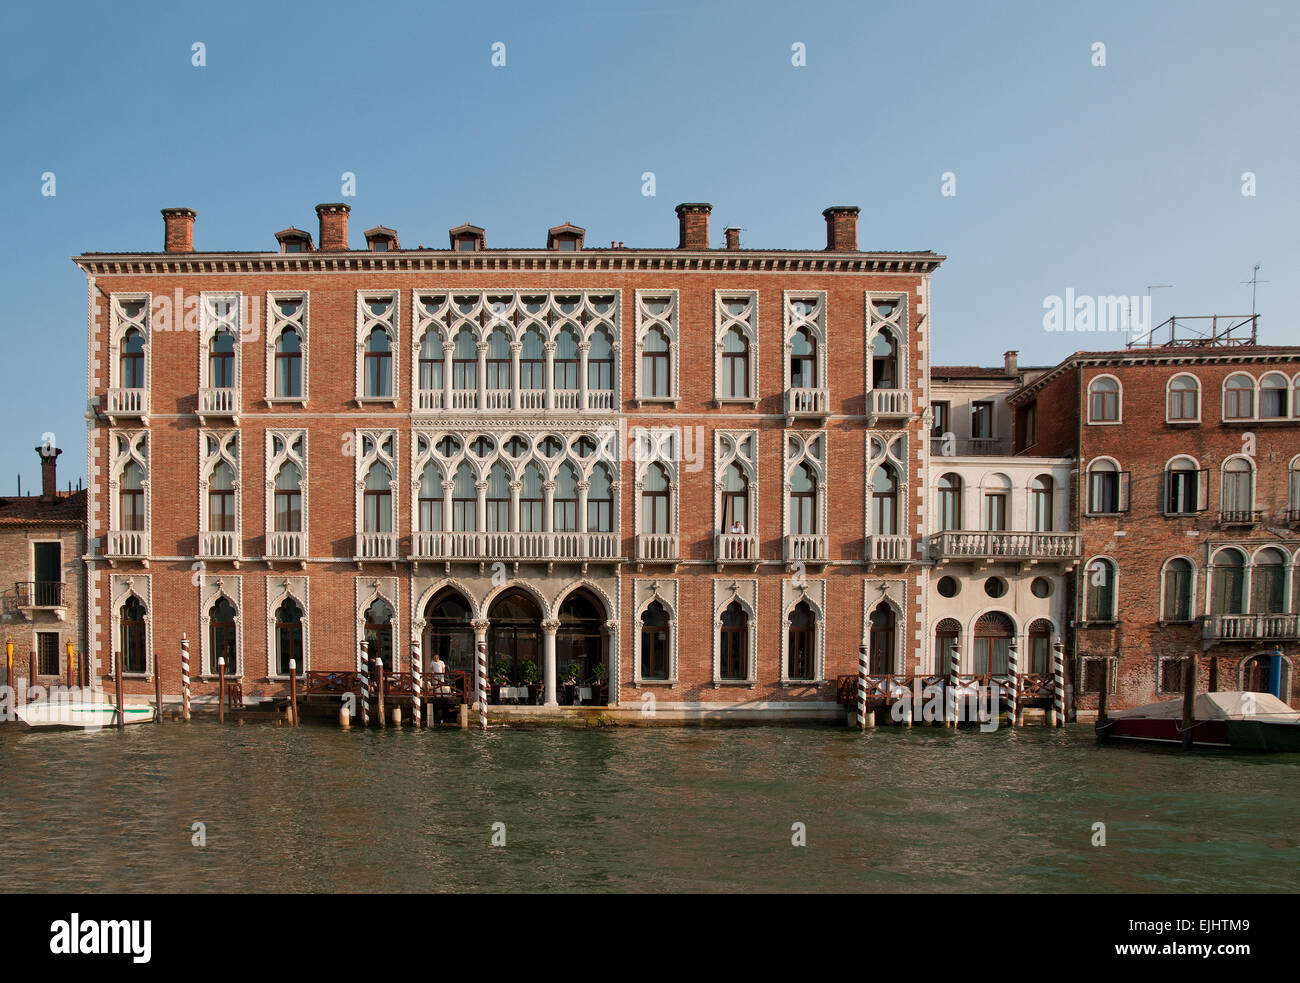 Substantial palace buildings houses palazzo pallazi with moored motor boats on the Grand Canal Venice Italy - Stock Image